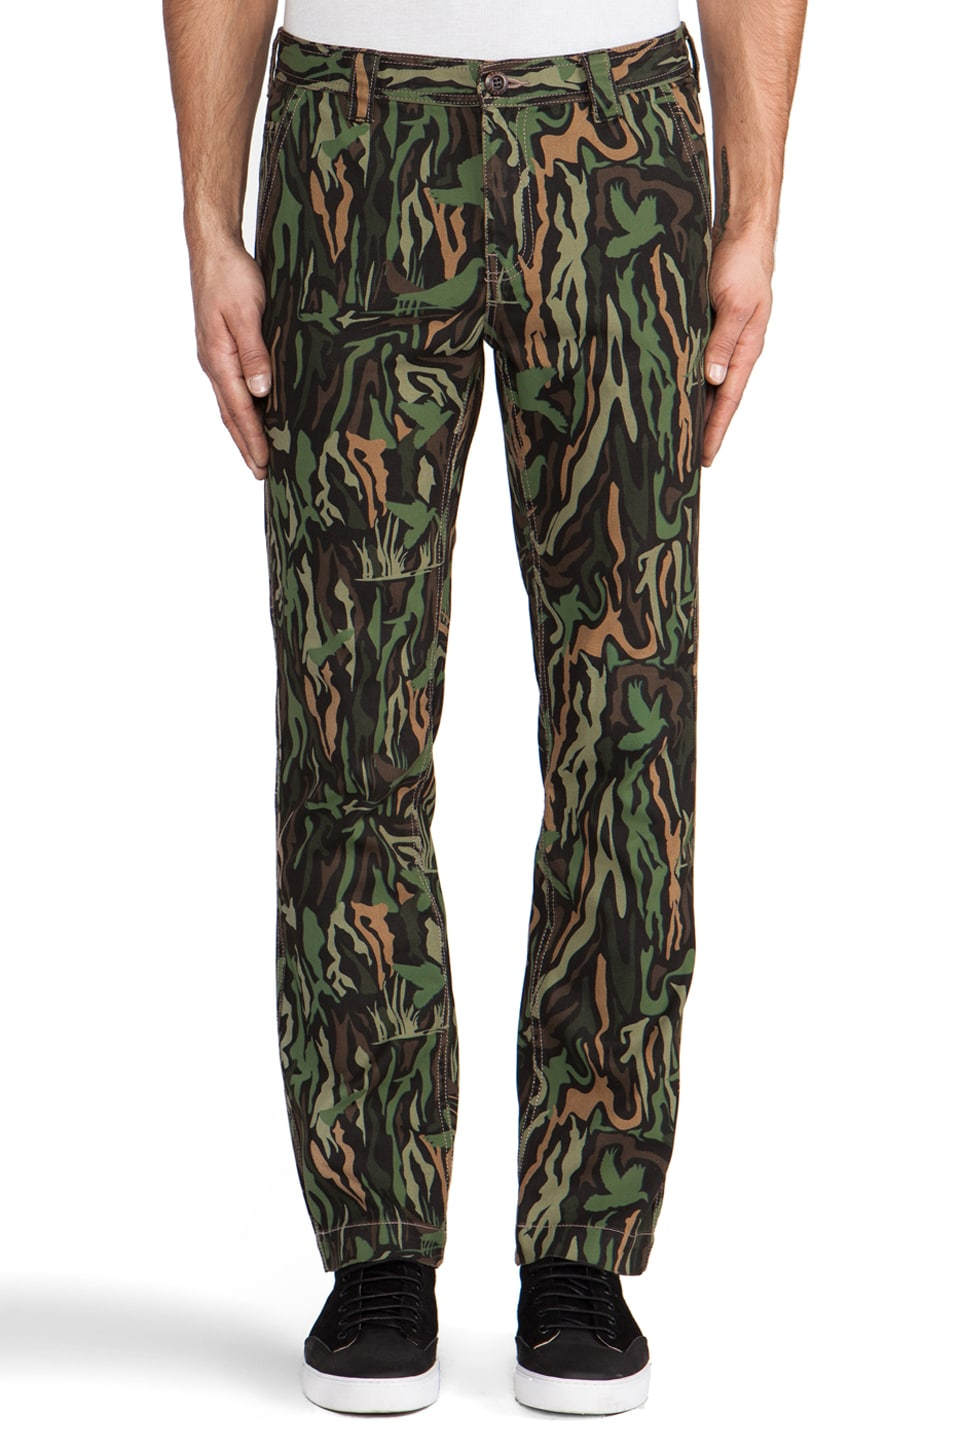 Staple Bushwick Pants in Camo